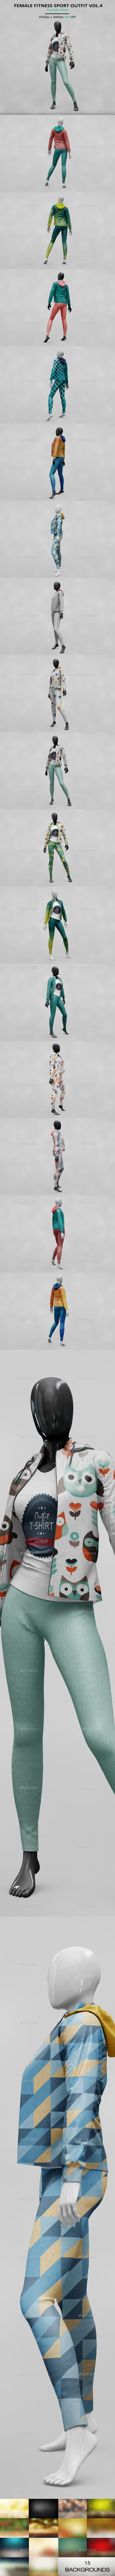 Female Sport Outfit Mockup - Product Mock-Ups Graphics